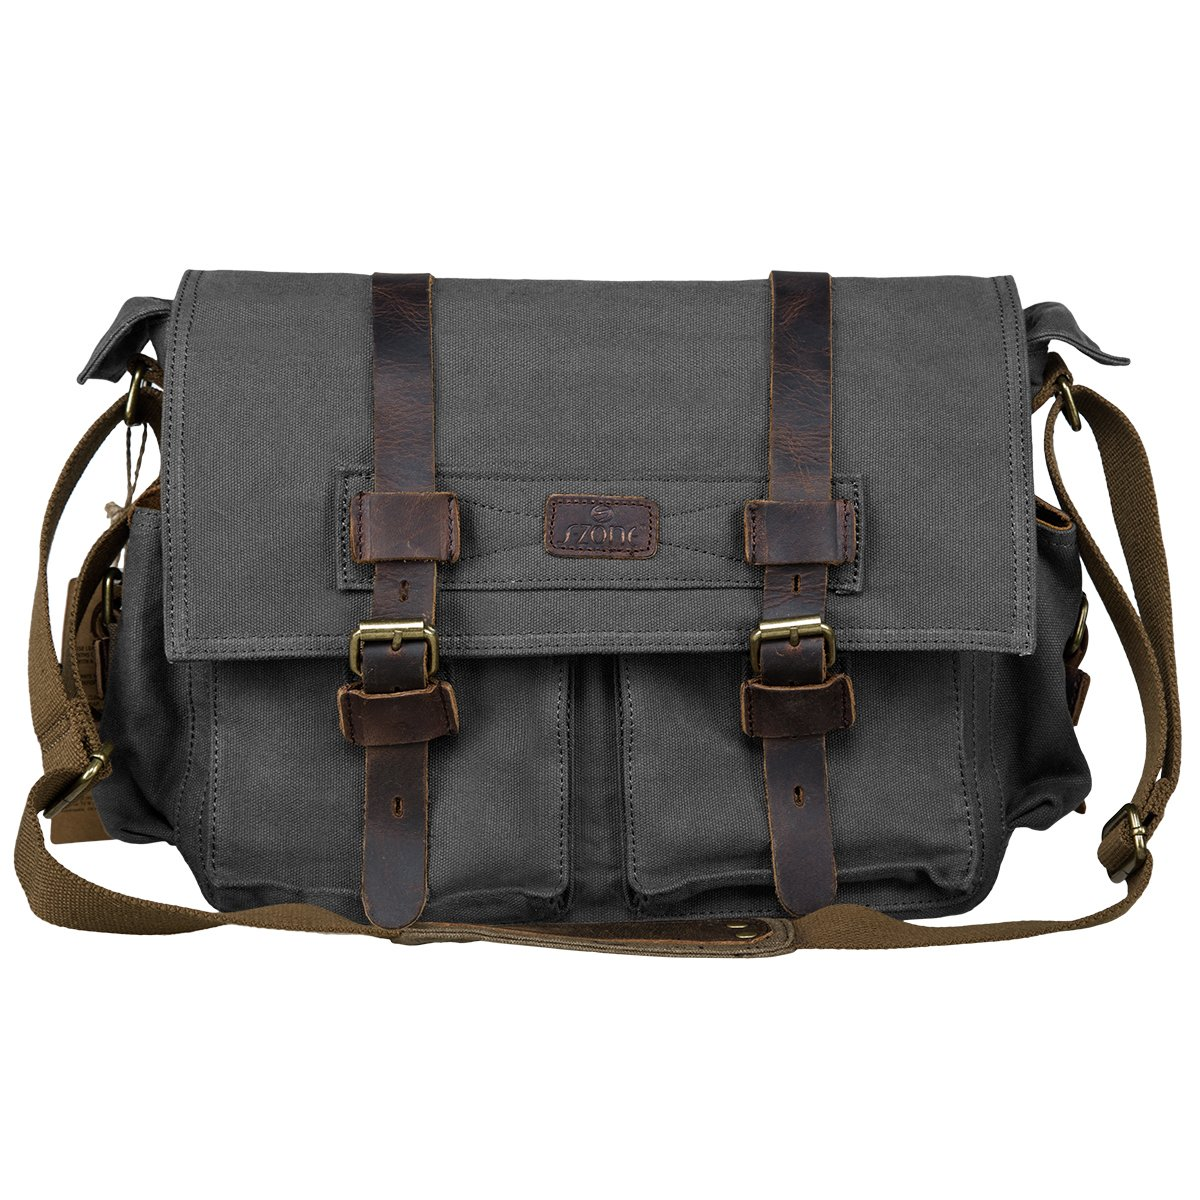 0691f1fc6d Amazon.com   S-ZONE Vintage Canvas Camera Bag DSLR SLR Messenger Bag  Leather Satchel Shoulder for Men and Women   Camera   Photo